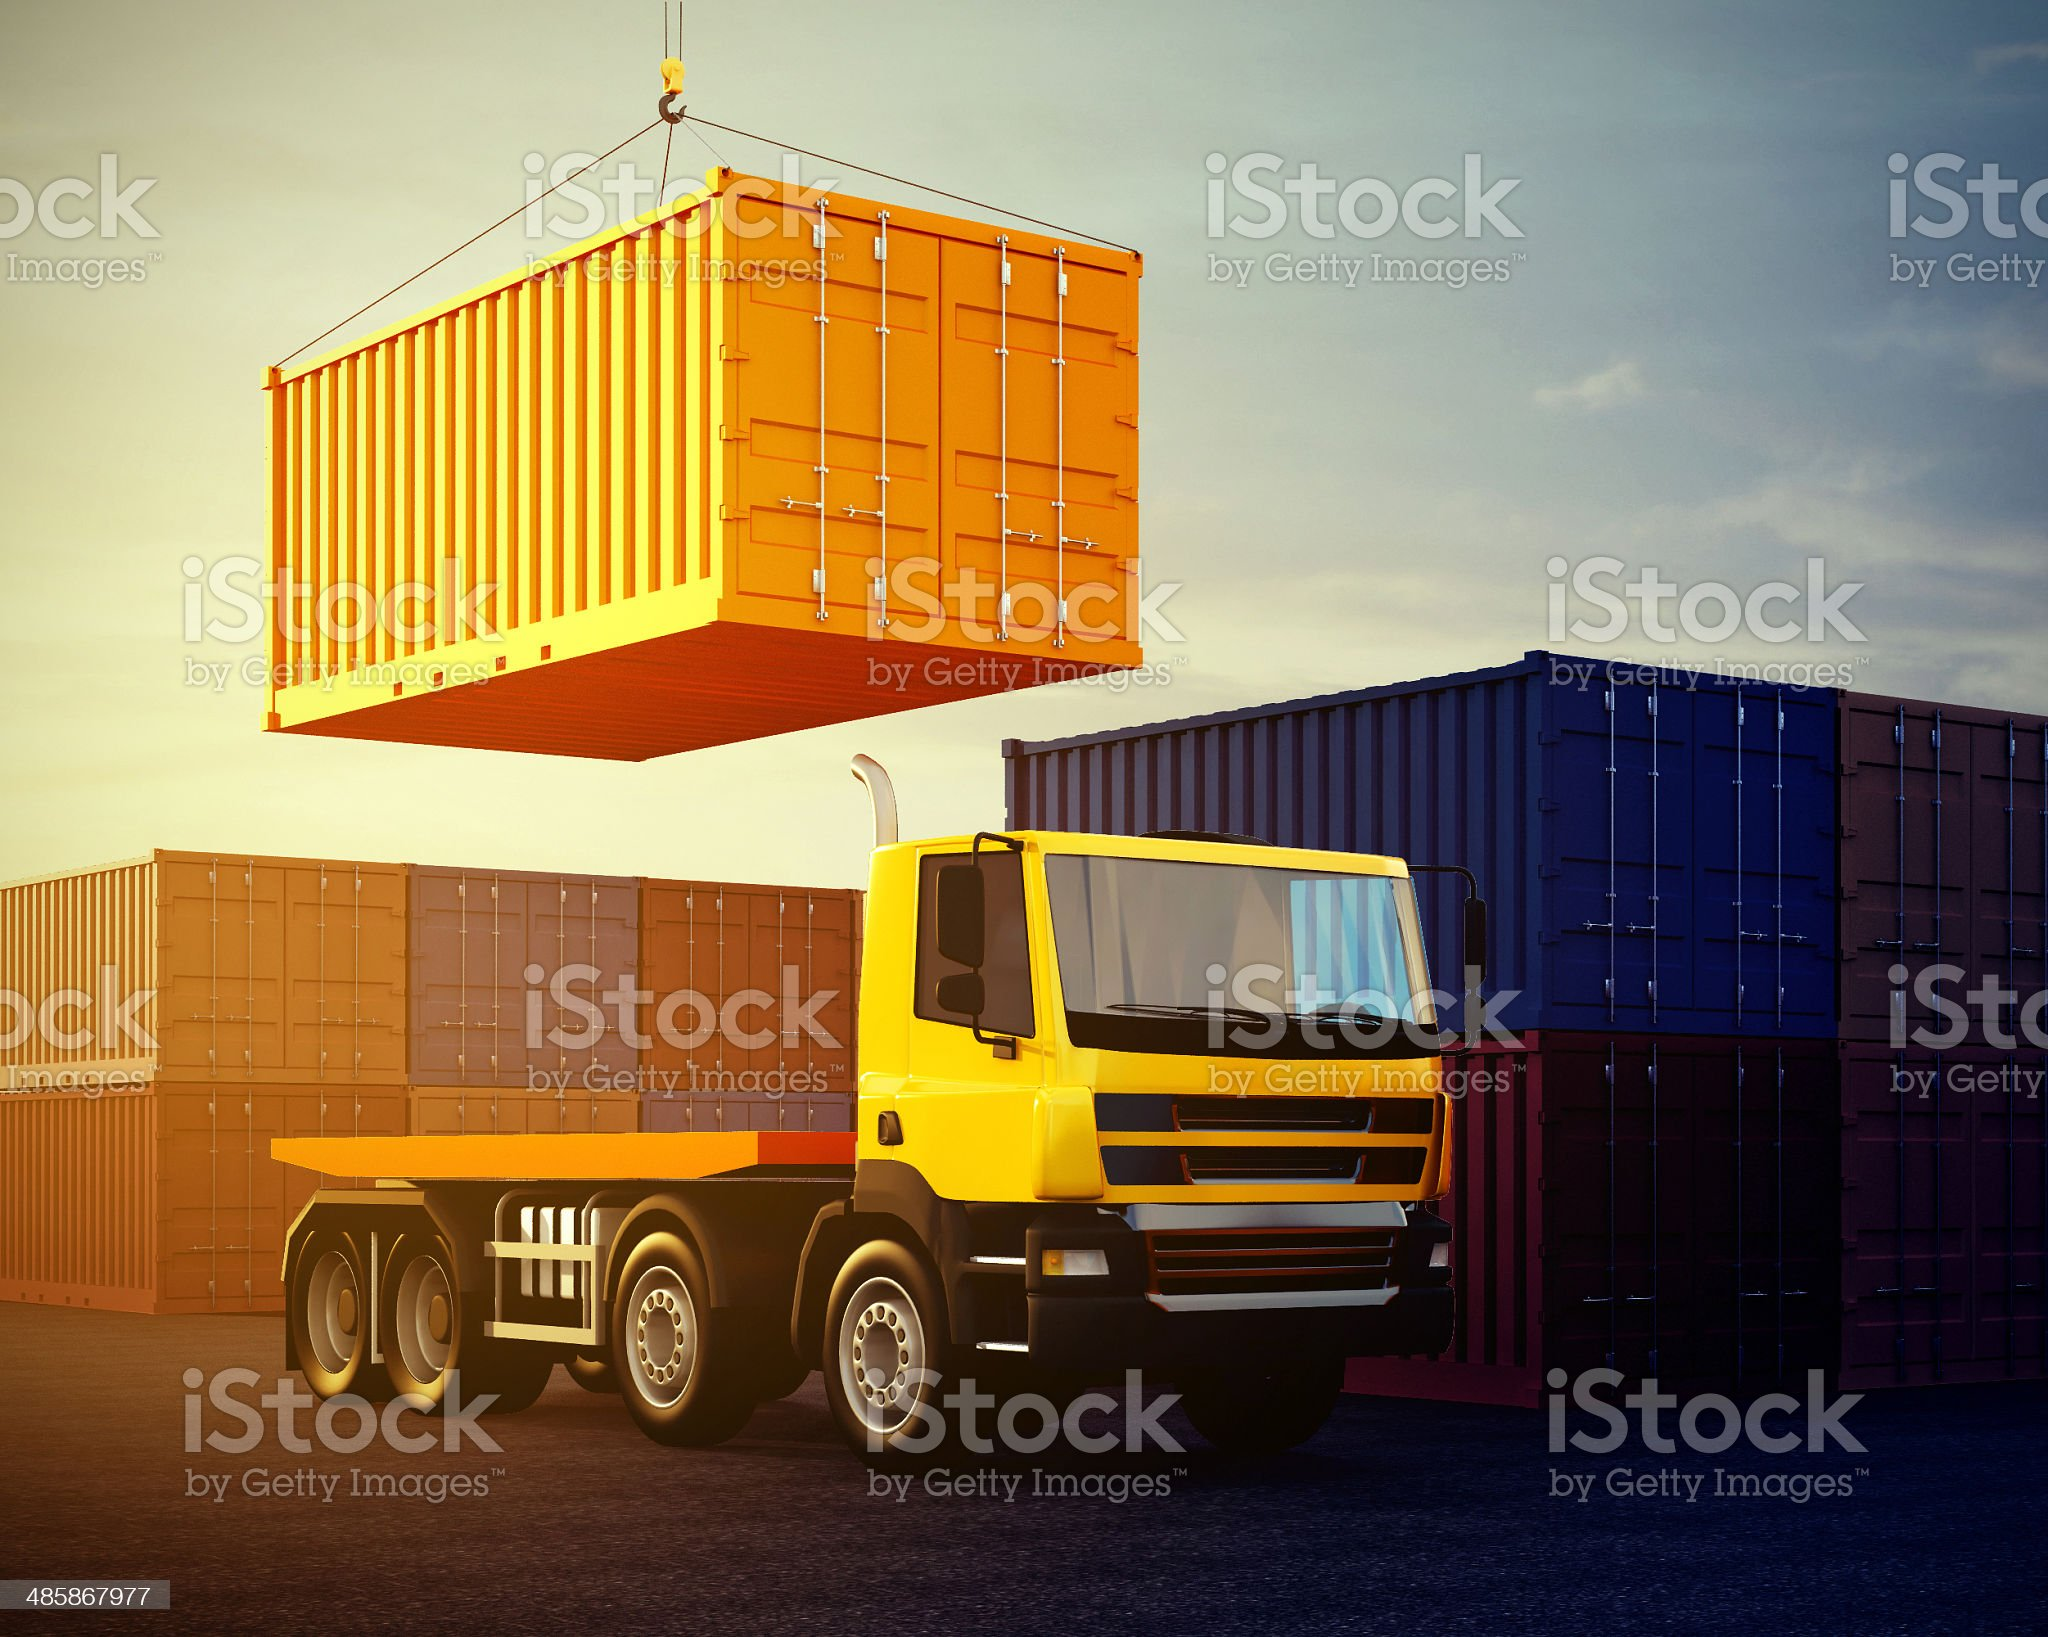 orange truck on background of stack of freight containers royalty-free stock photo